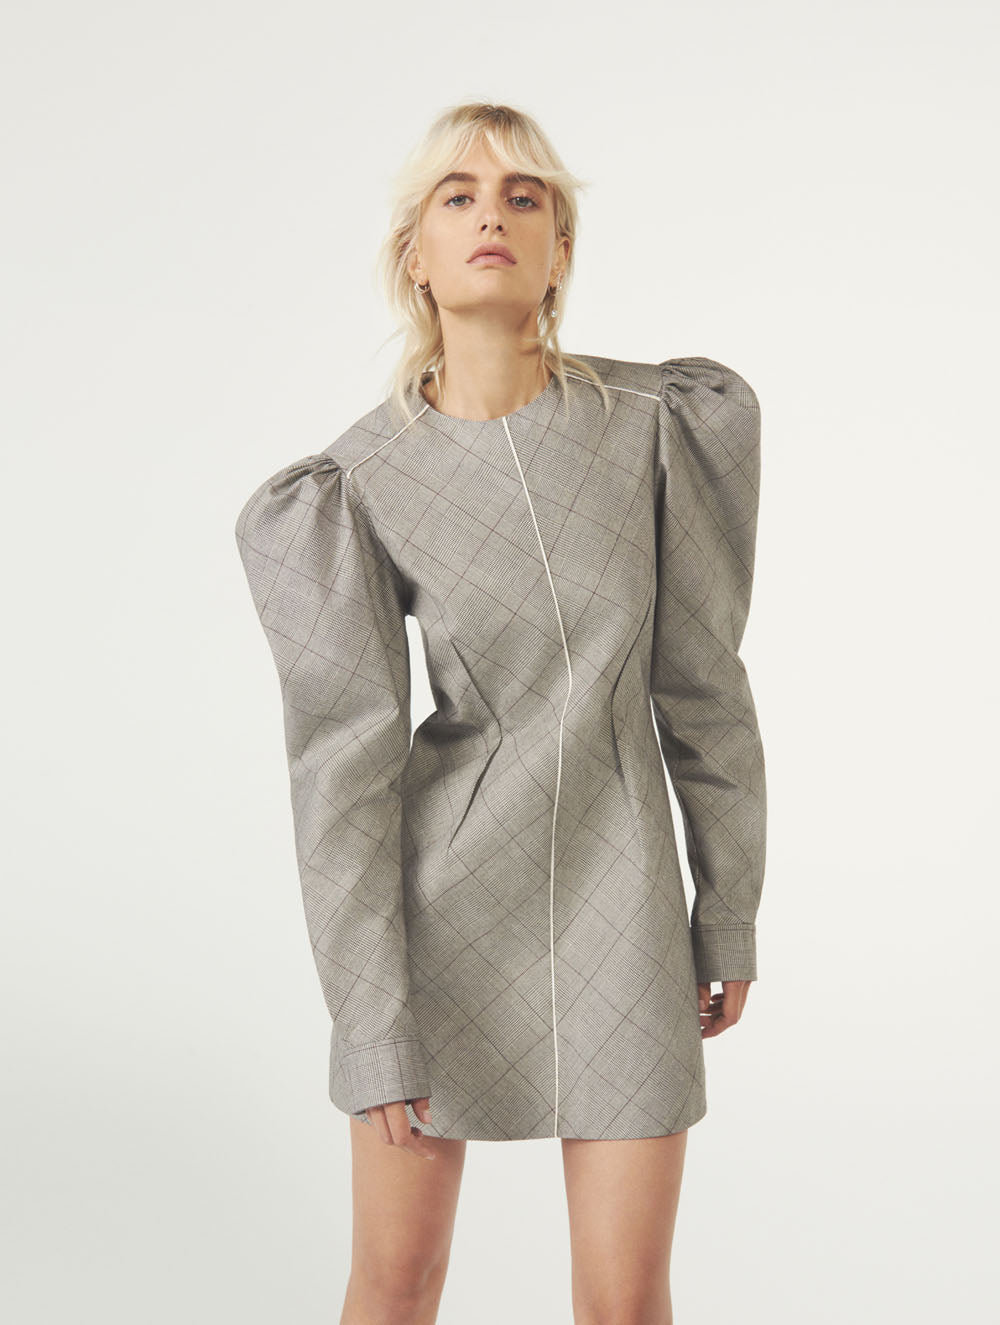 Women Fashion Lookbook Resort 2020 Collection Aknvas Look 4